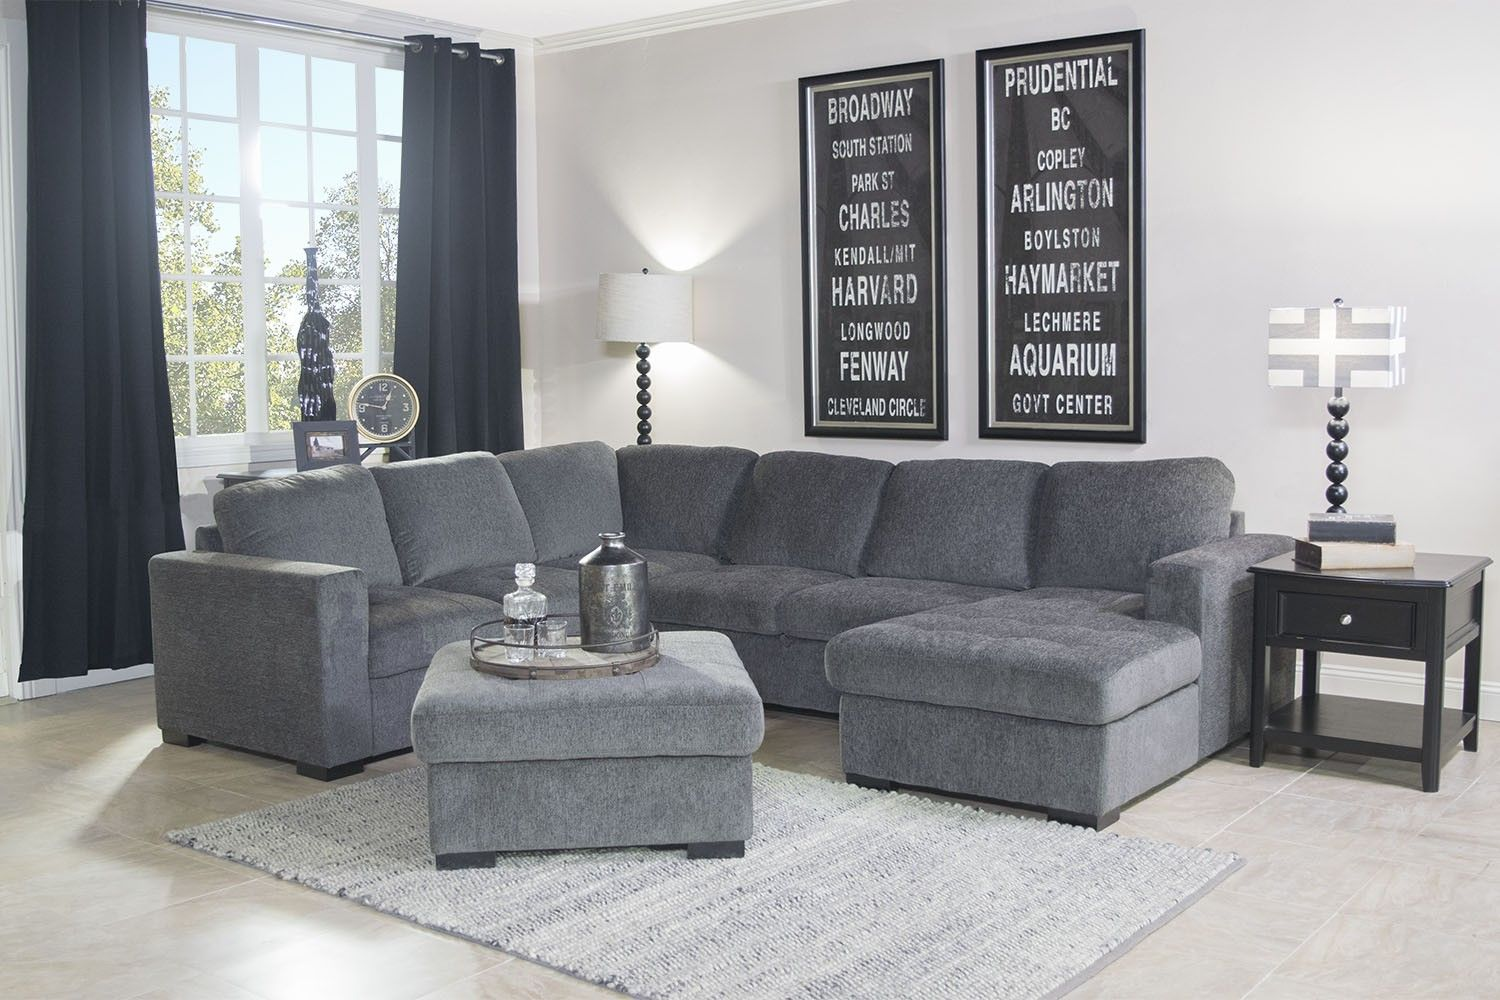 Living Room Sets For Less mor furniture for less: the claire sectional living room | mor